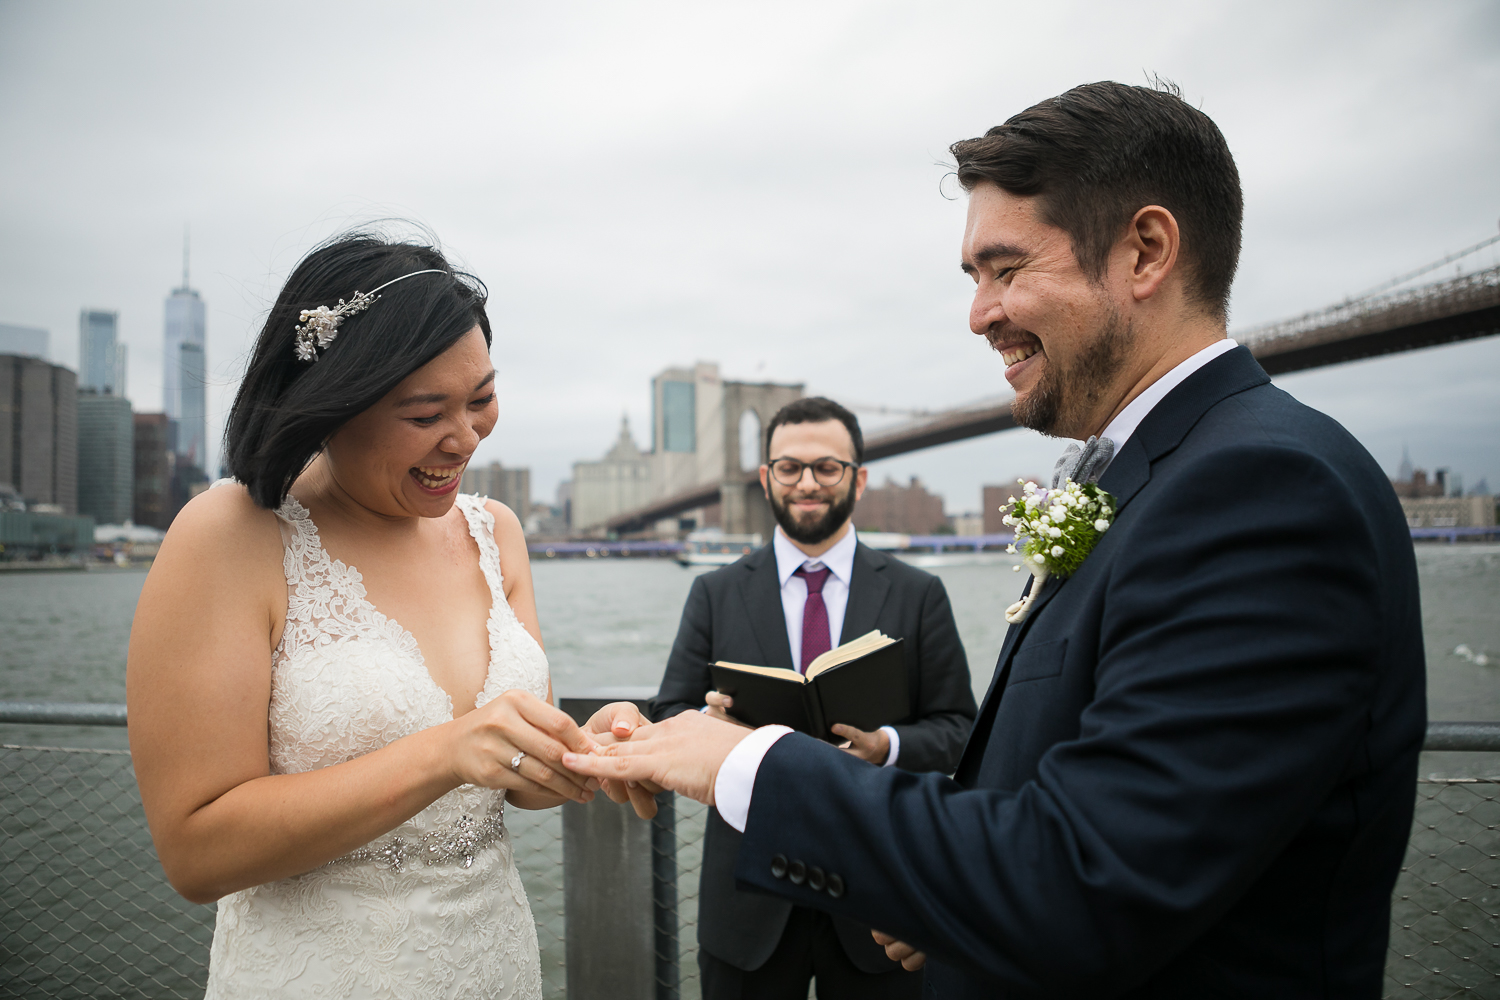 Ring exchange during a wedding ceremony in NYC.